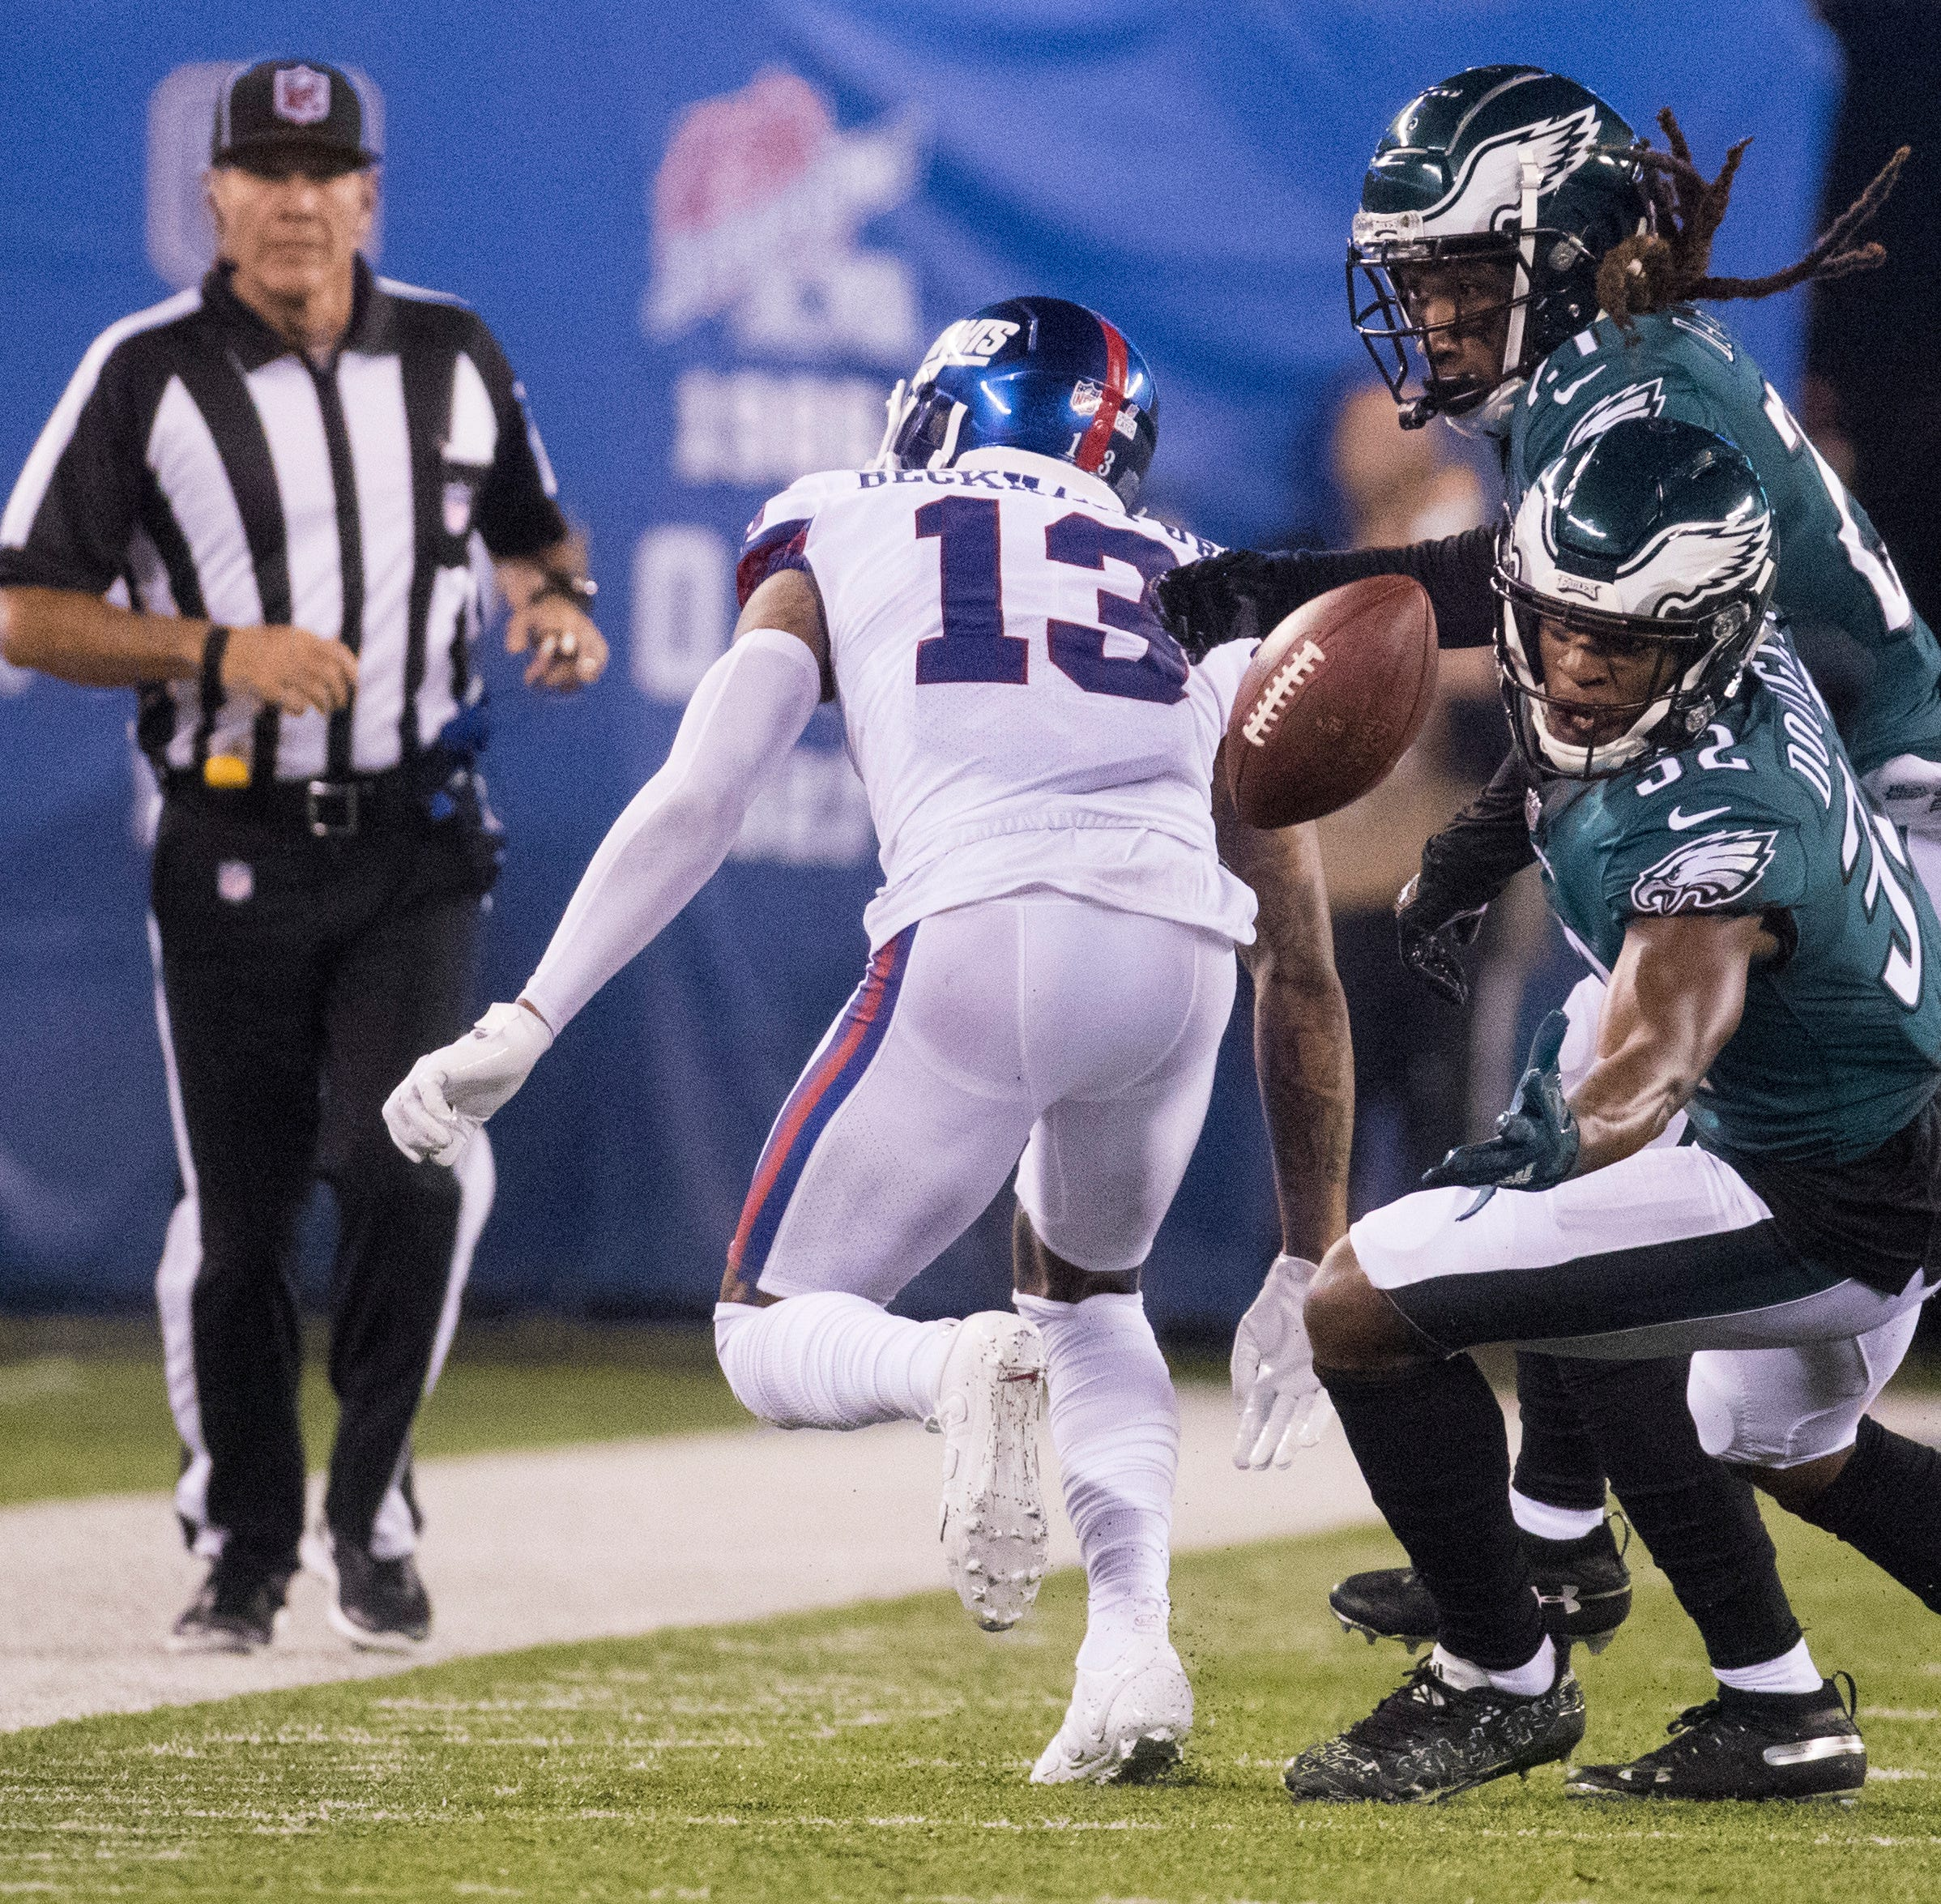 At safety, Eagles find experience not necessary with Rasul Douglas, Avonte Maddox